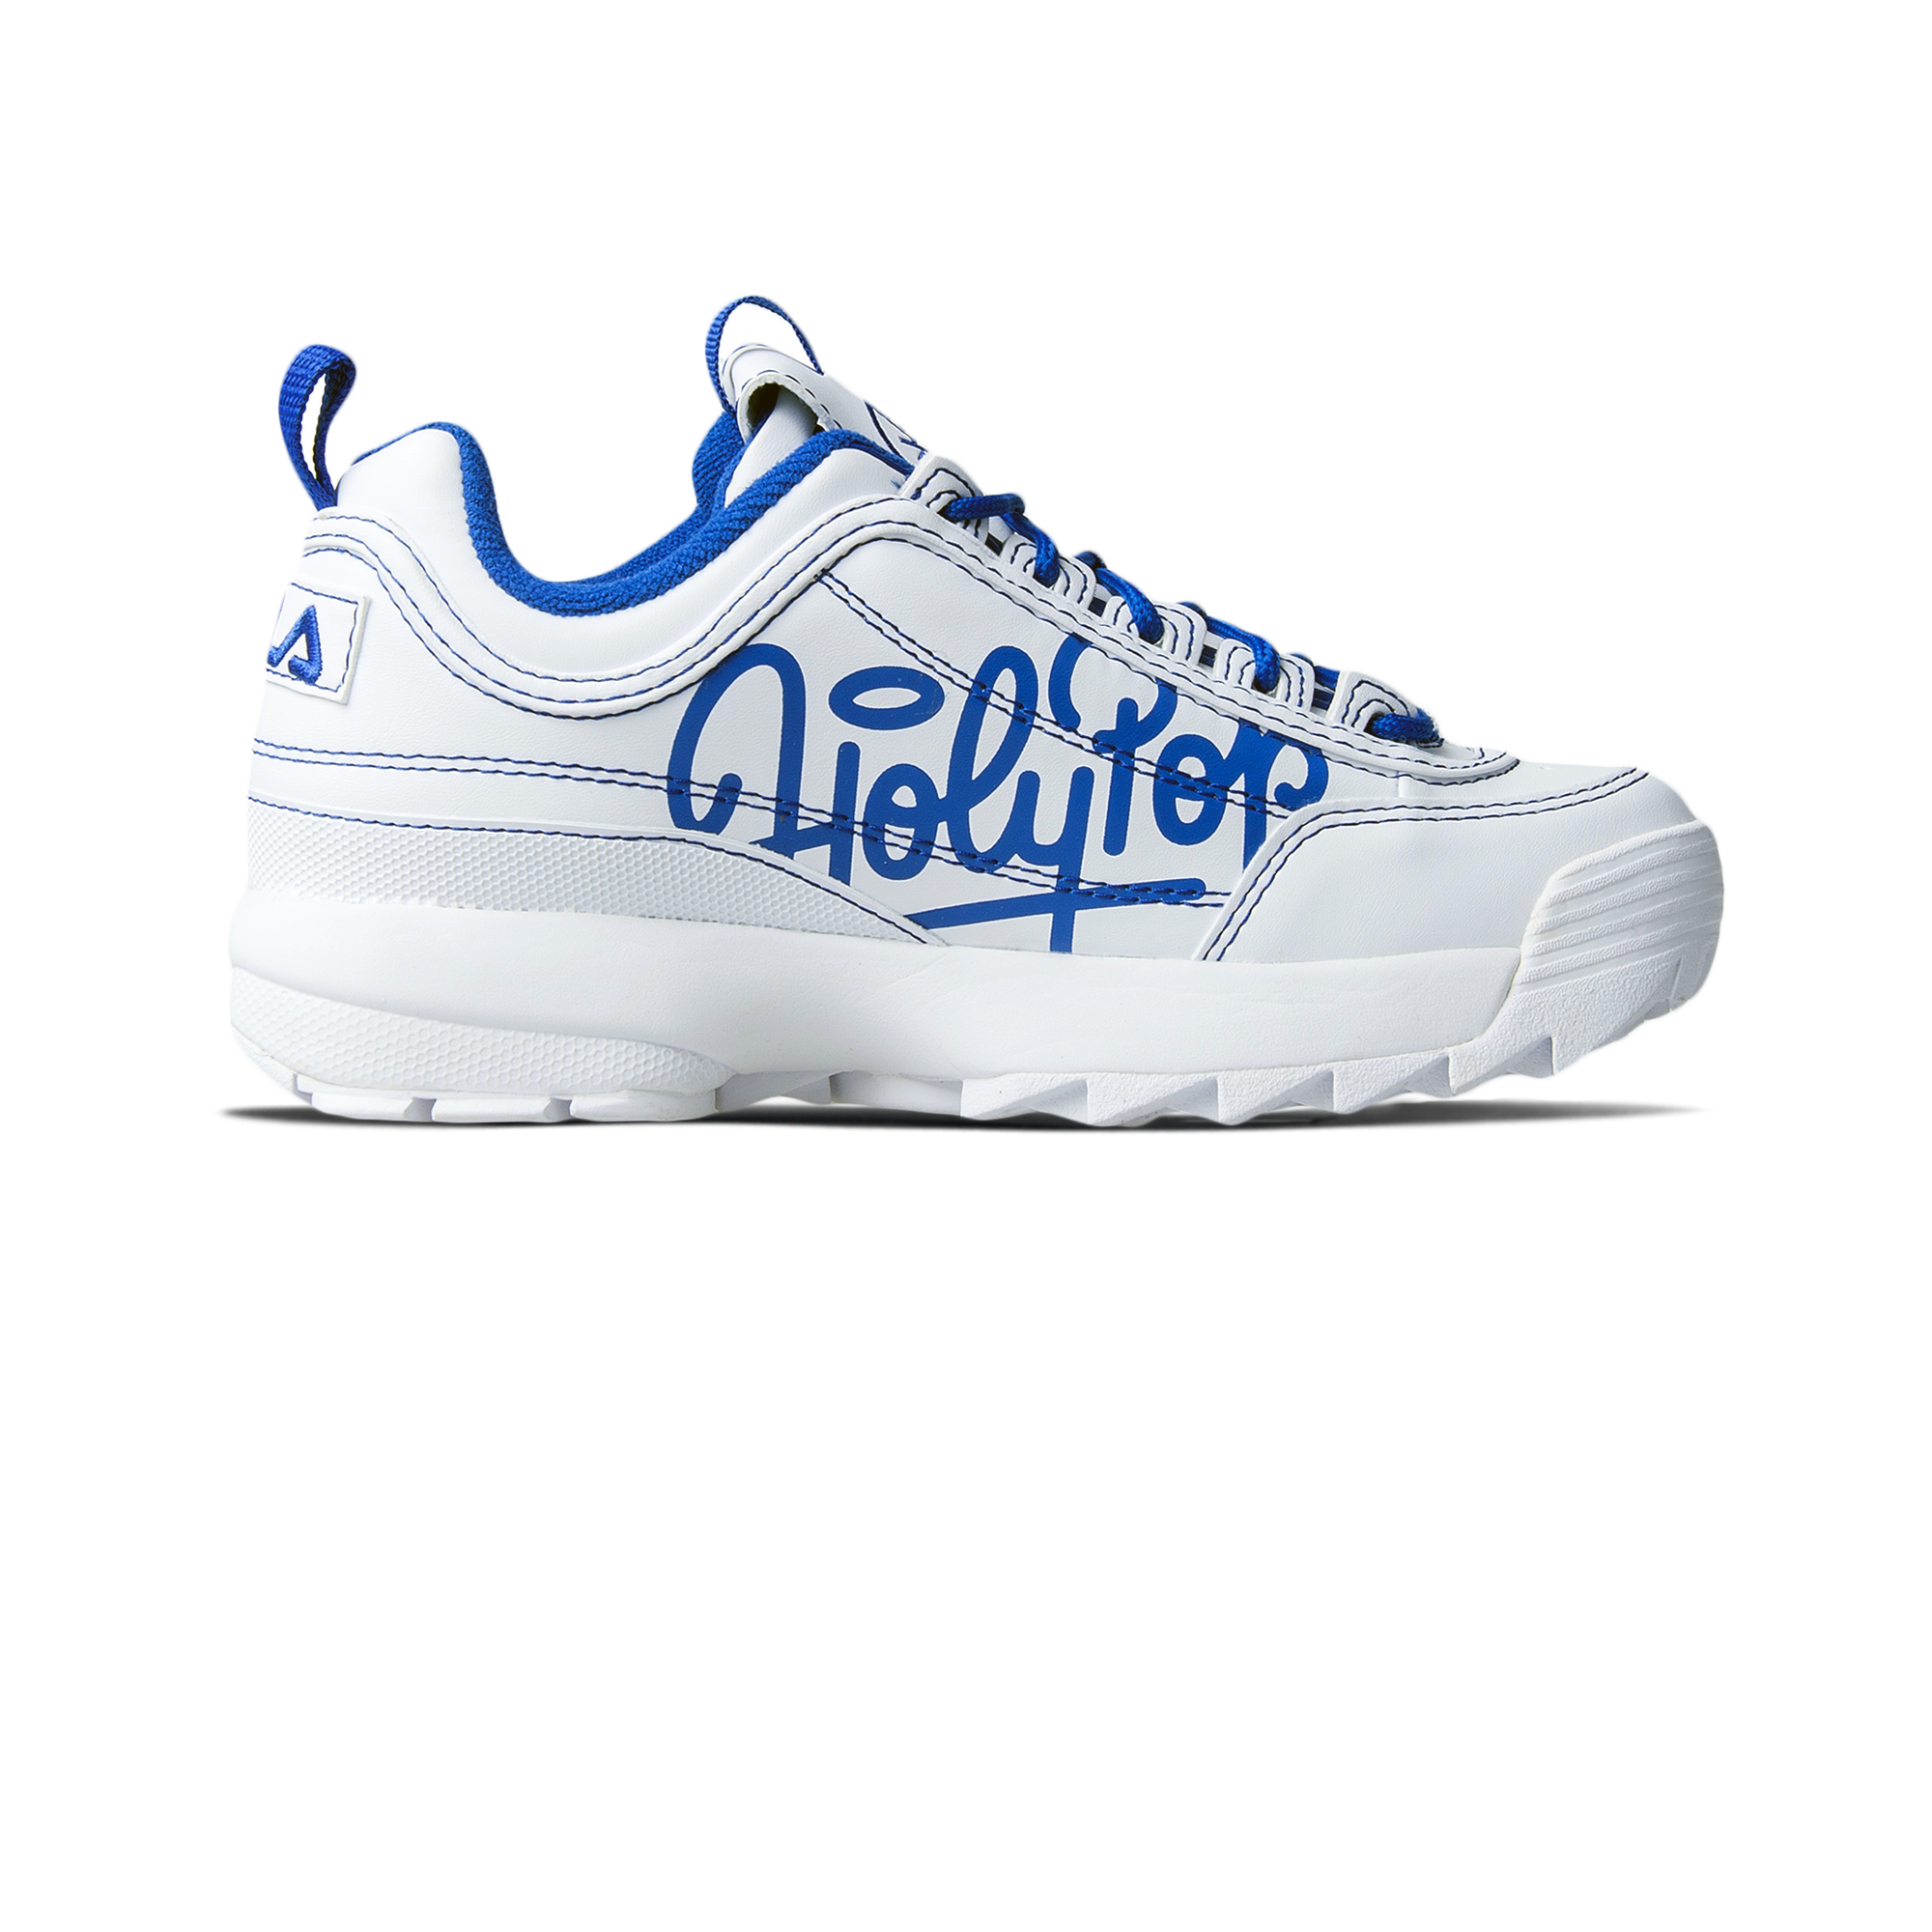 Disruptor x Holypop white/blue